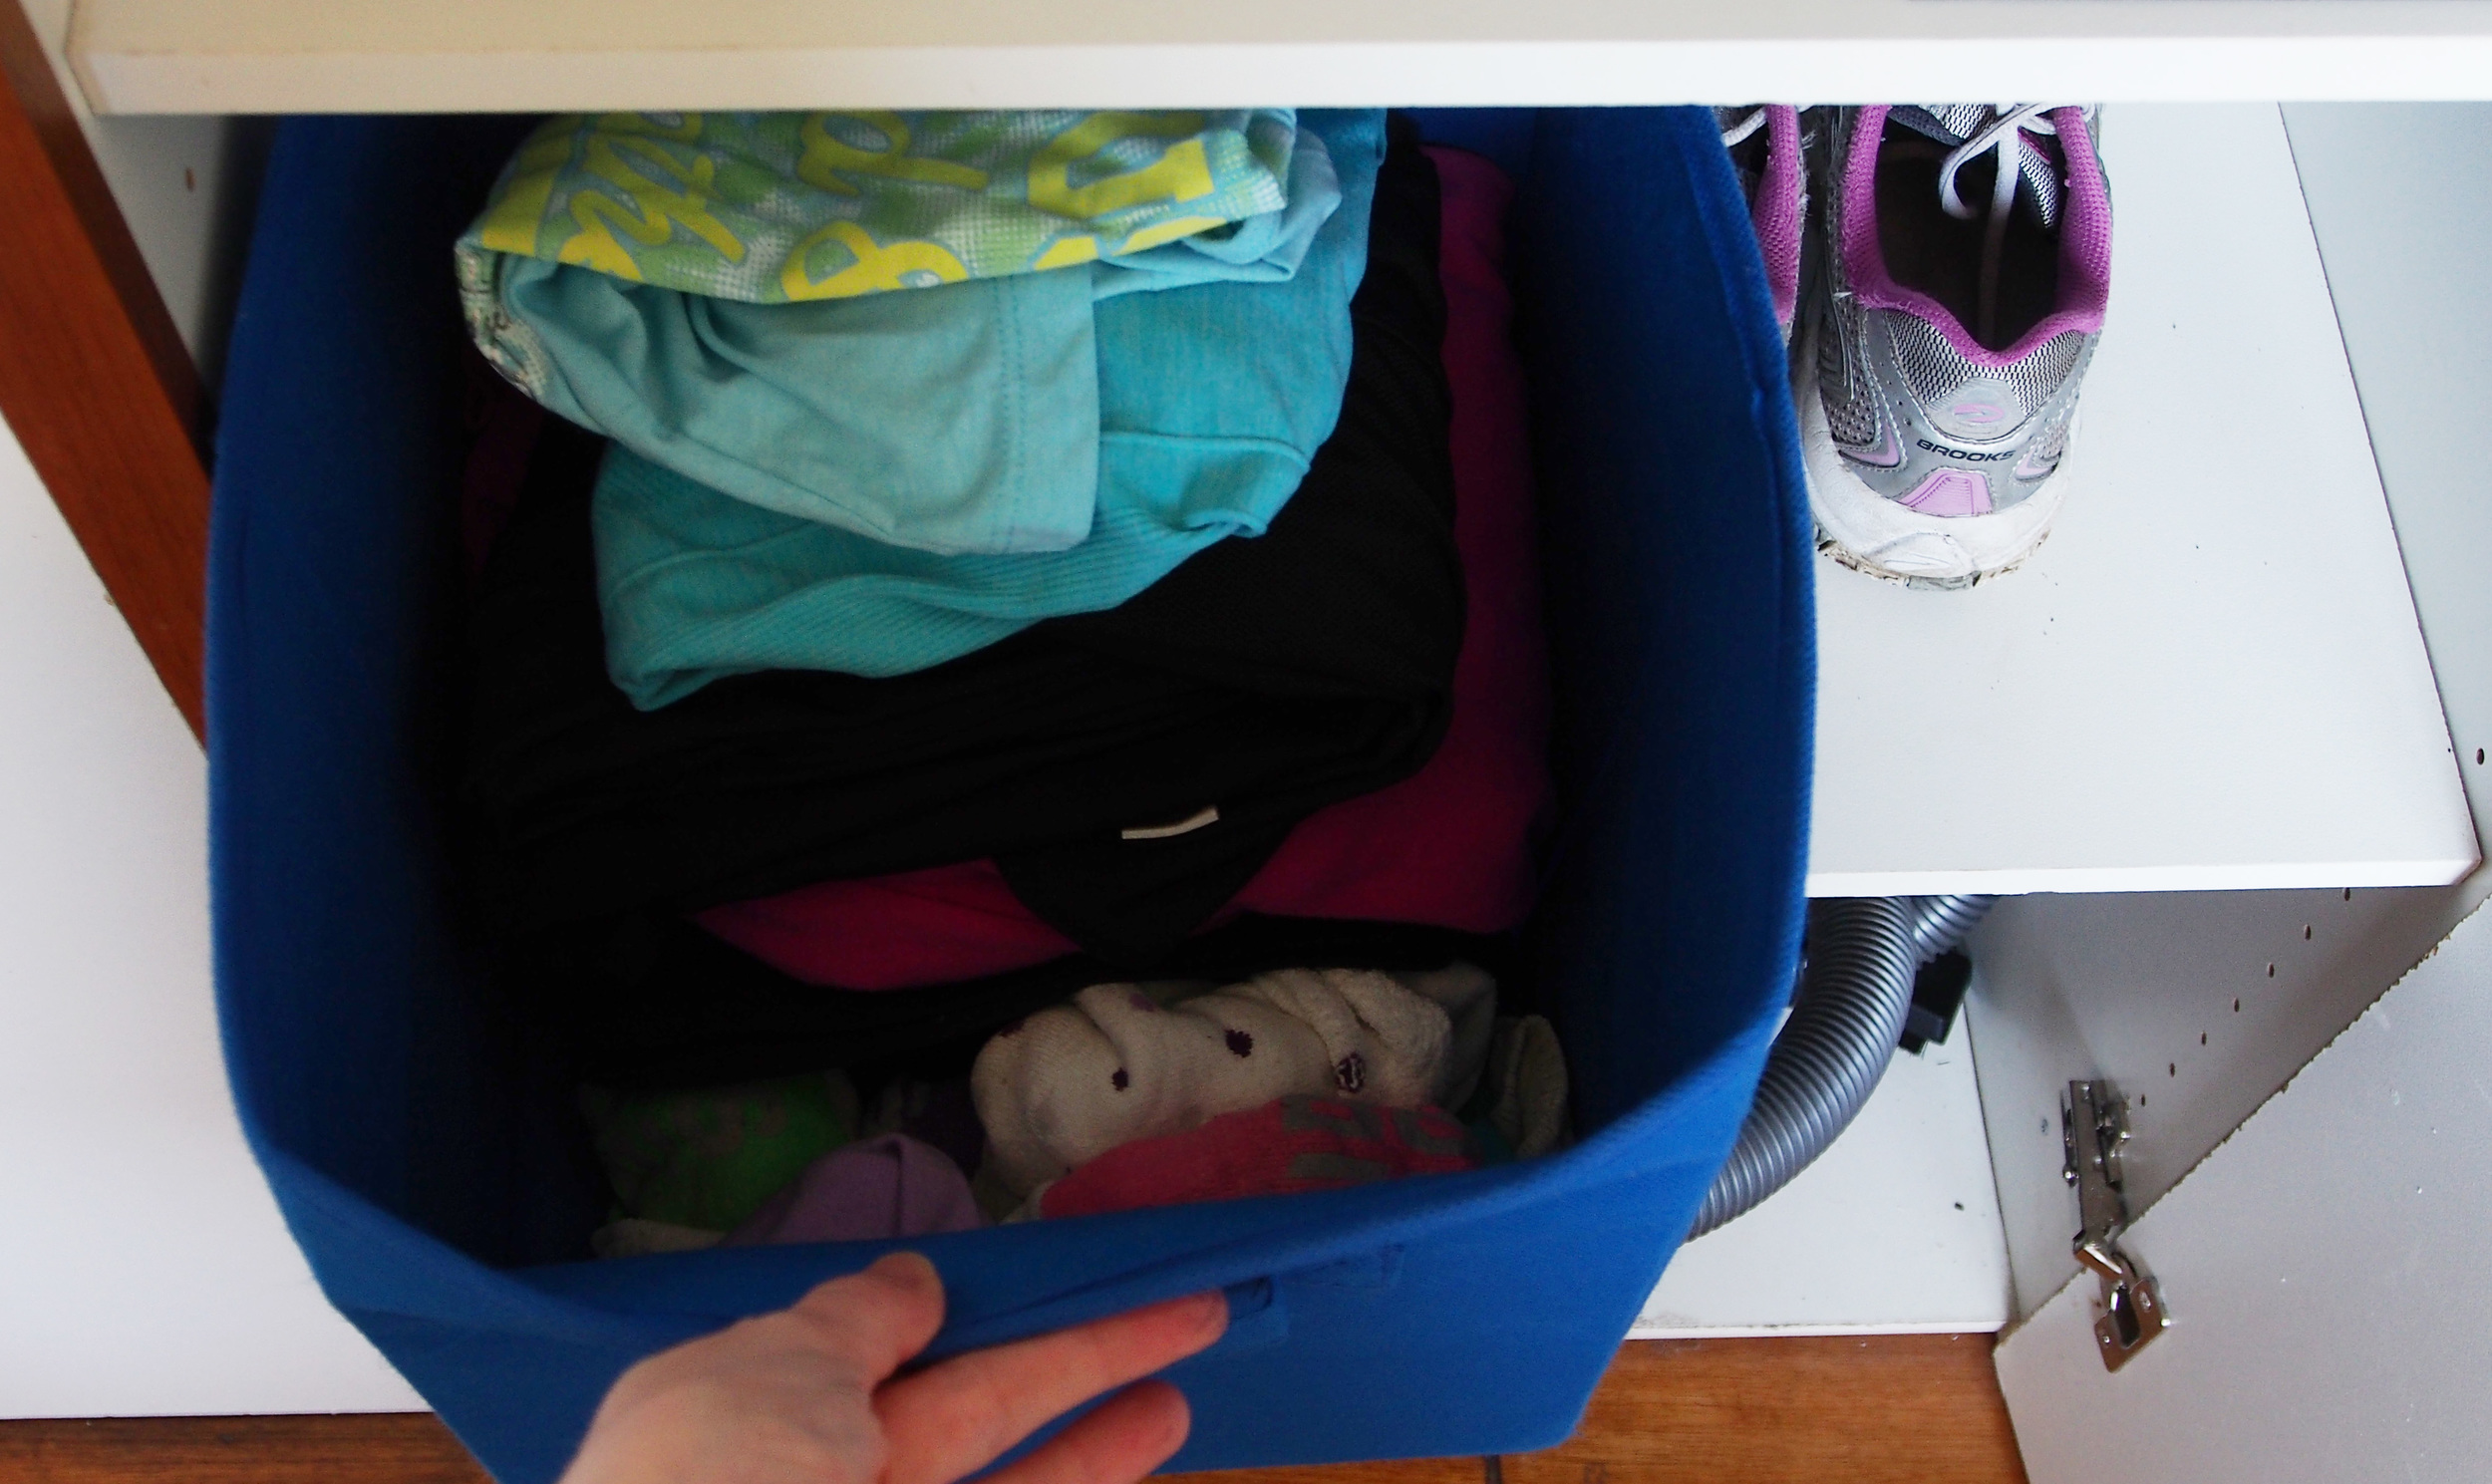 organised gym clothes